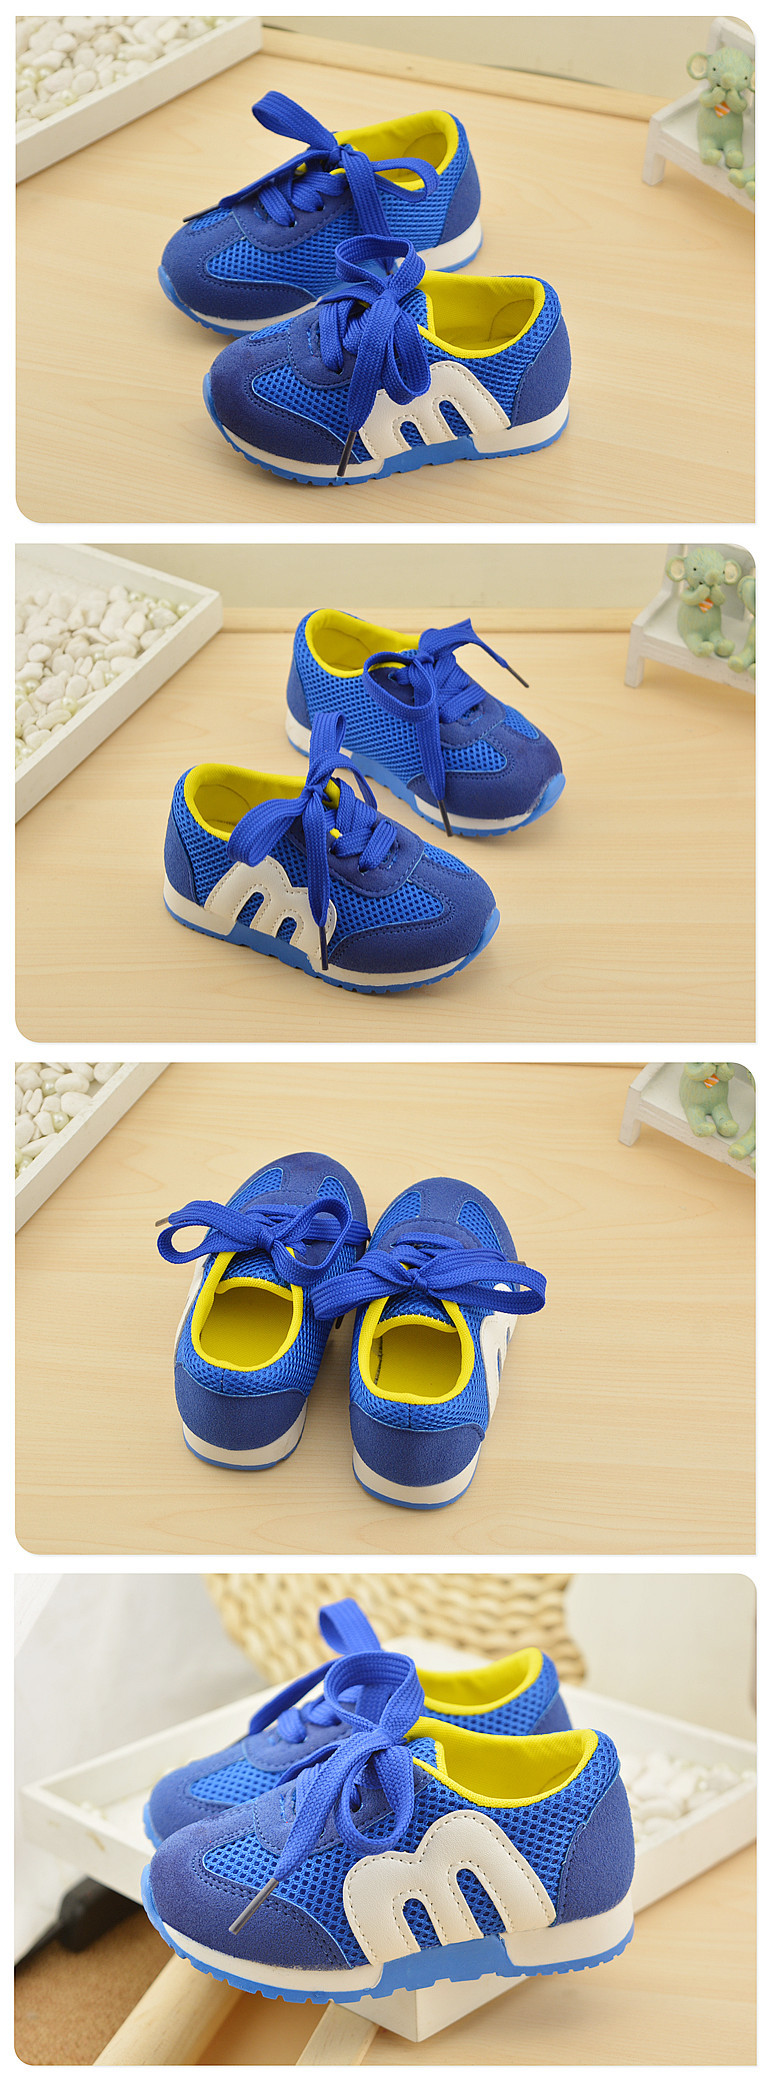 19 New Brand Spring Comfortable Sneakers Boy Girl Children's Sports Casual Shoes Breathable Mesh Baby Kids Soft Bottom Shoes 4